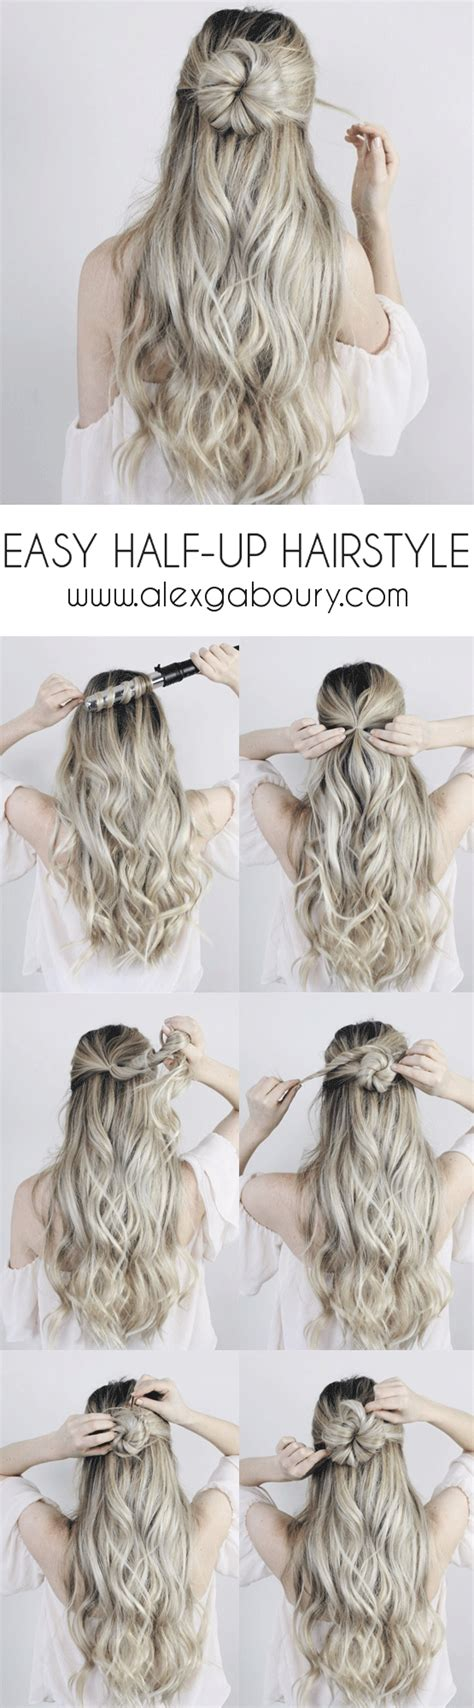 hairstyles with extensions half up easy half up hairstyle with a twist alex gaboury